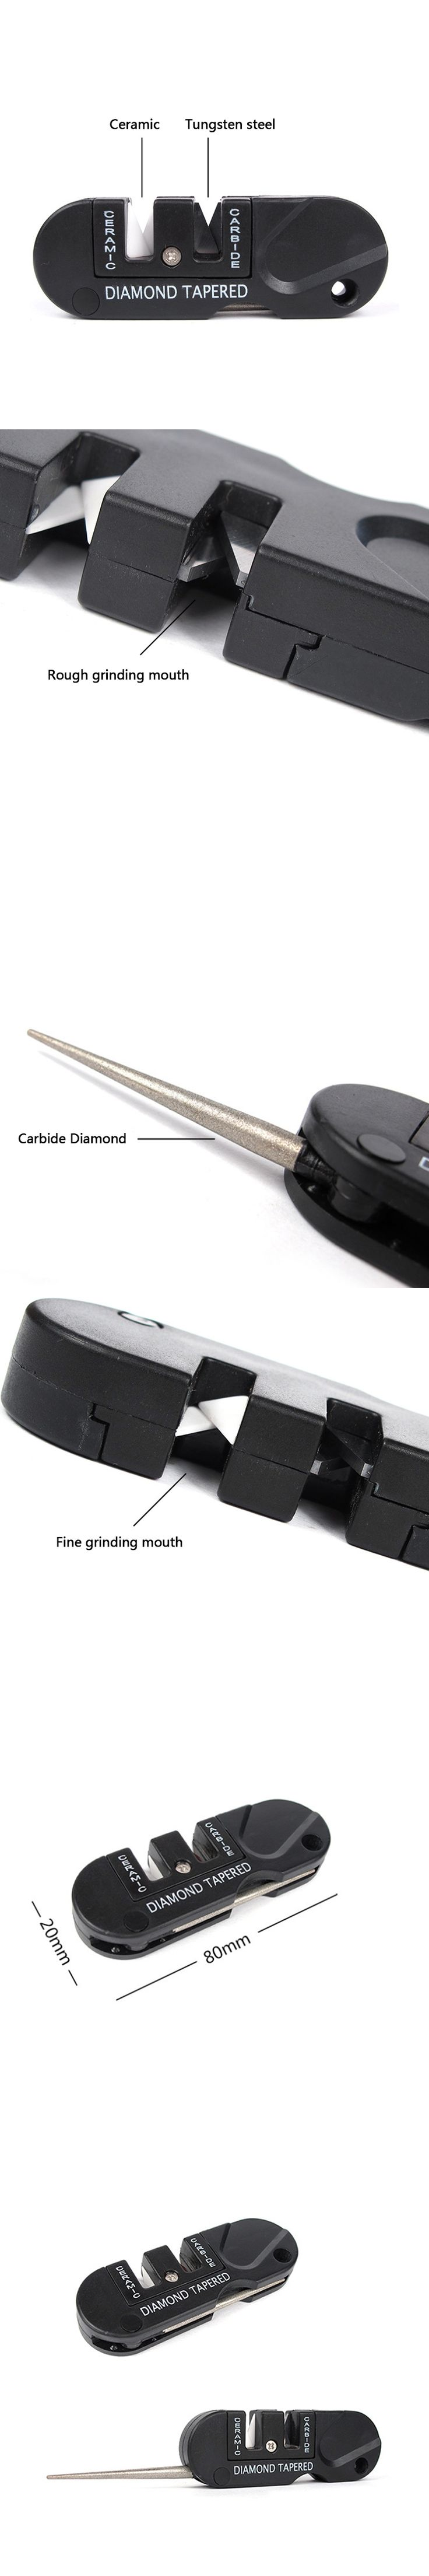 Easy Carry Three Stages Ceramic Carbide Diamond Knife Sharpener Pocket Outdoor EDC Tool Fish Hook Professional Sharpening Stone